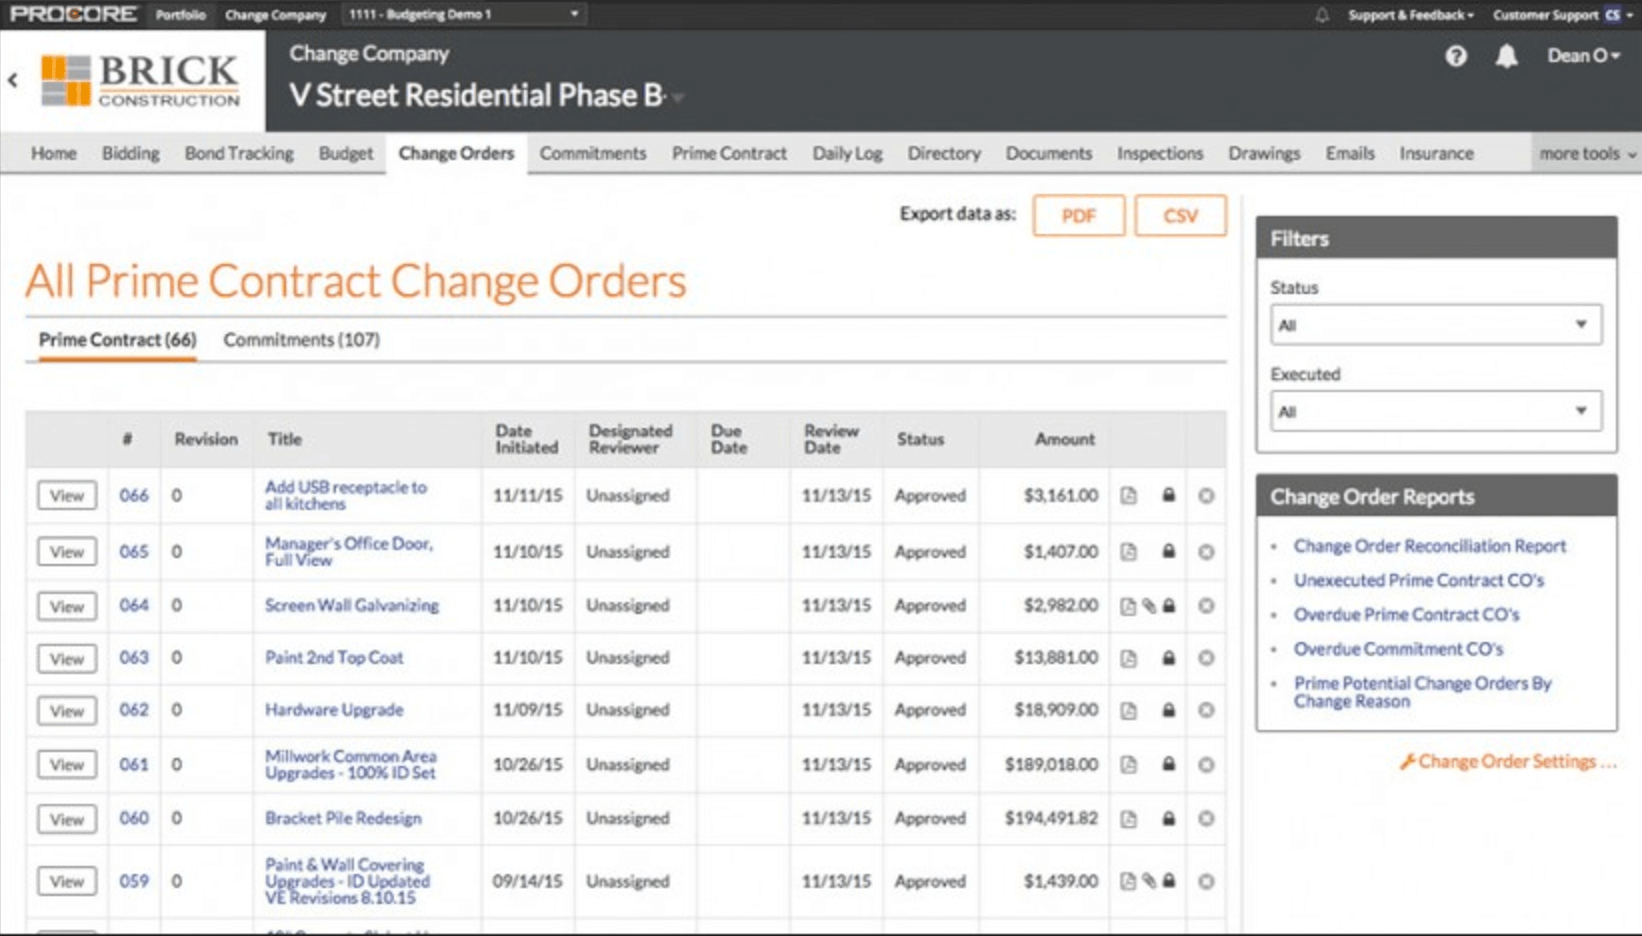 6. Managing change orders in Procore